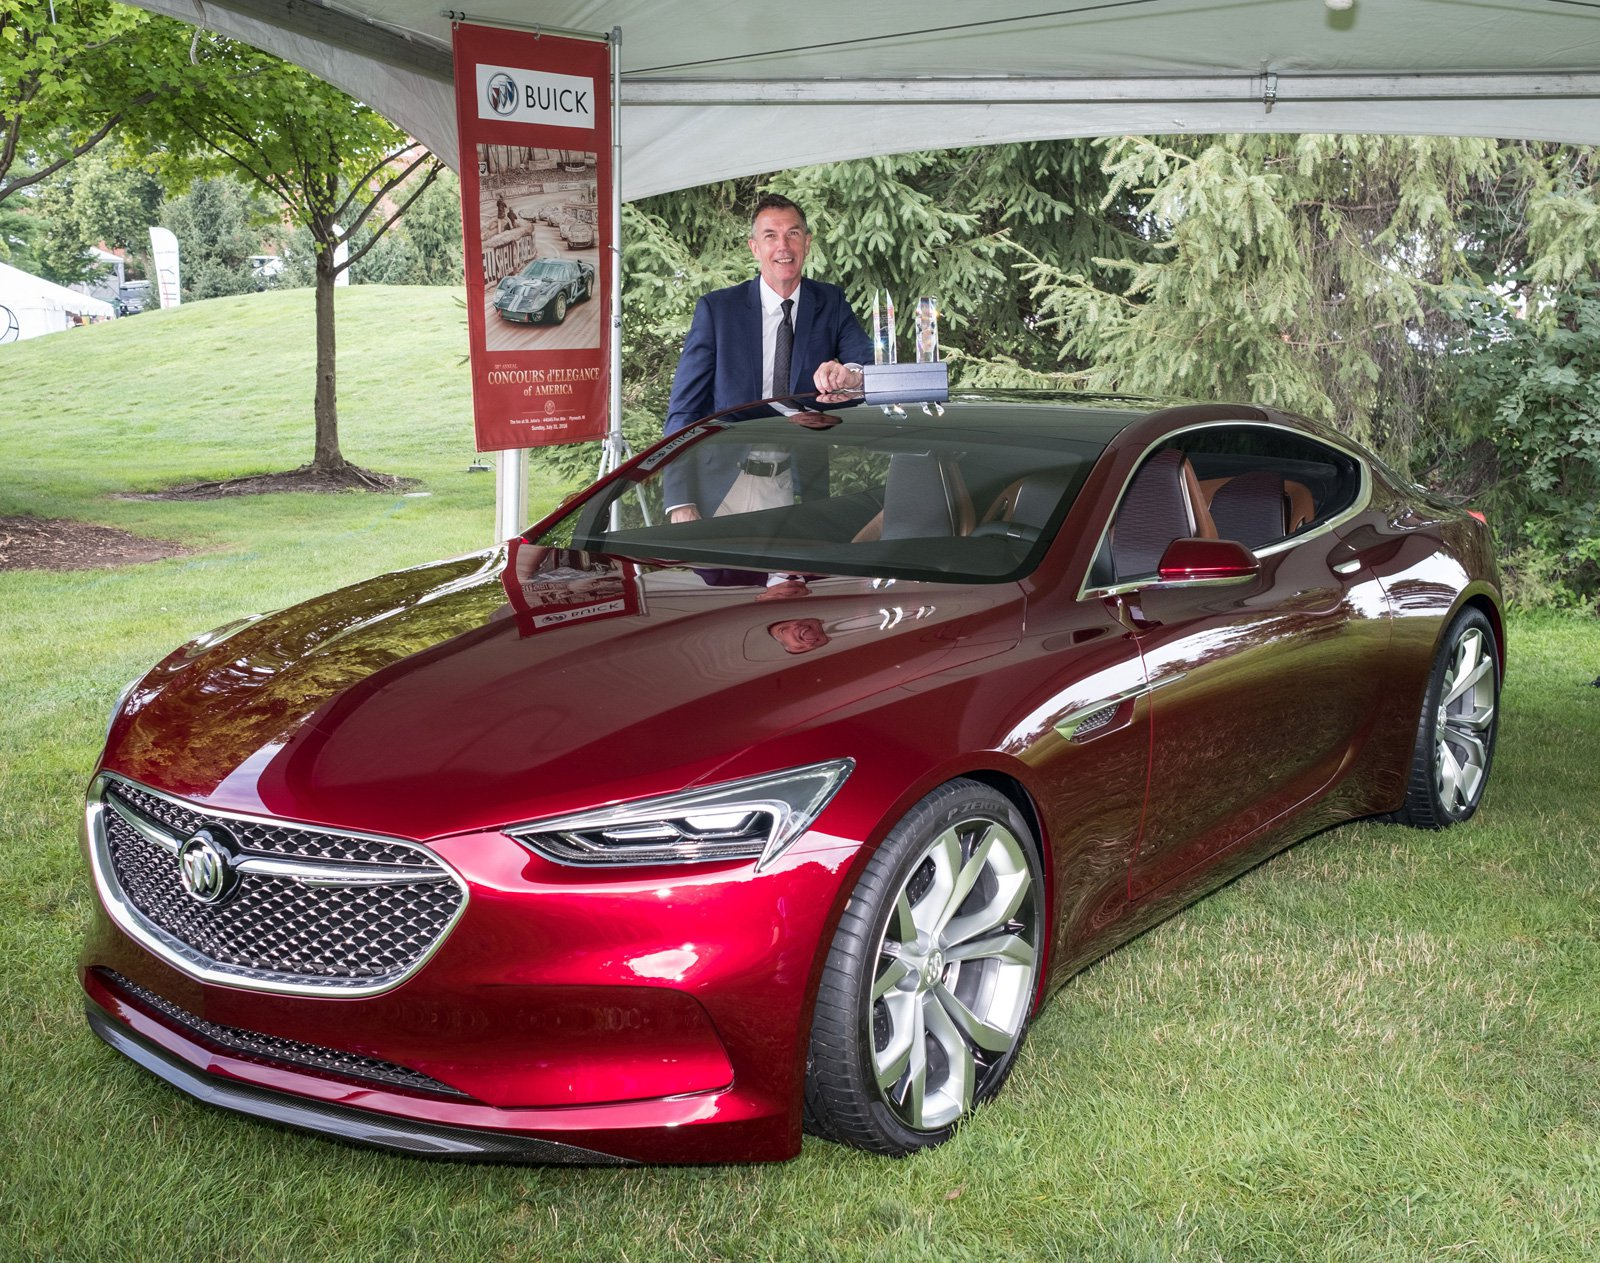 Buick Avista Named Concept Car of the Year - GM Inside News